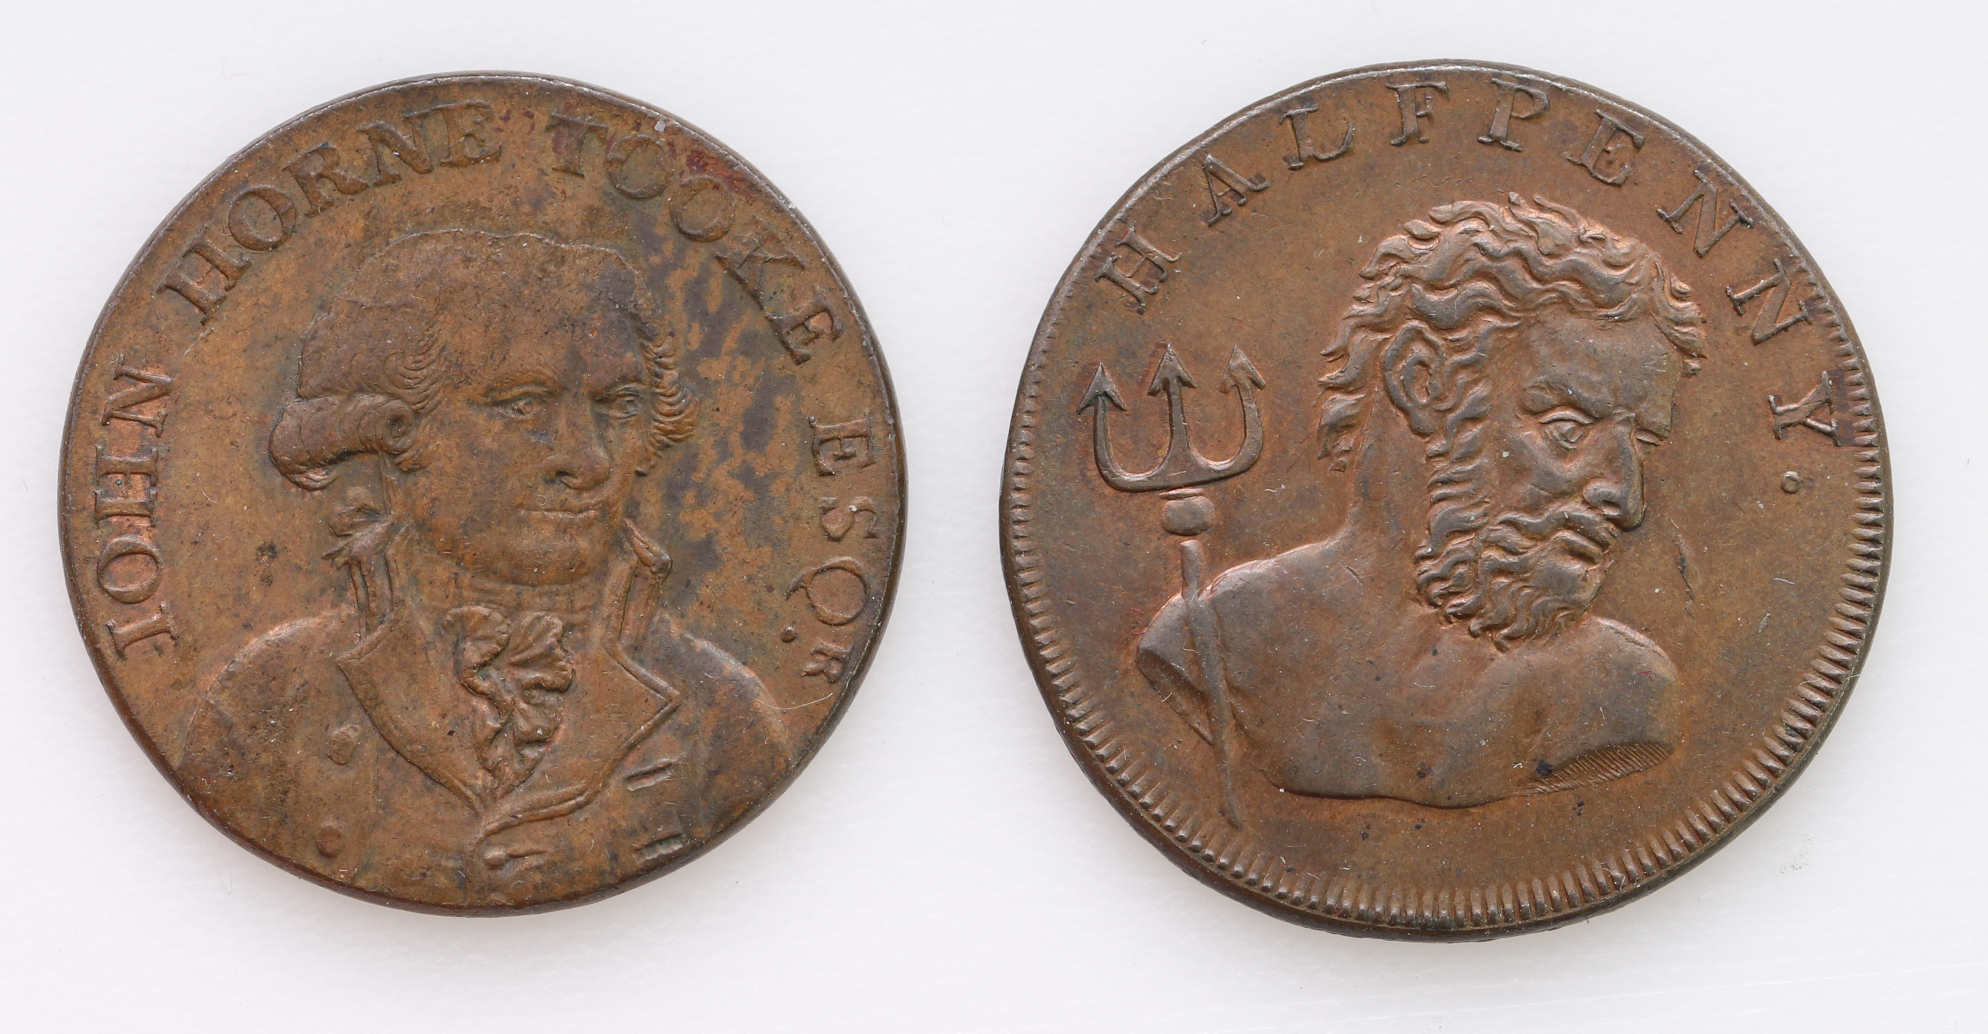 Tokens, 18thC (2) Middlesex, Halfpennies: Fowlers Whale Fishery 1794 EF trace lustre, and John Horne